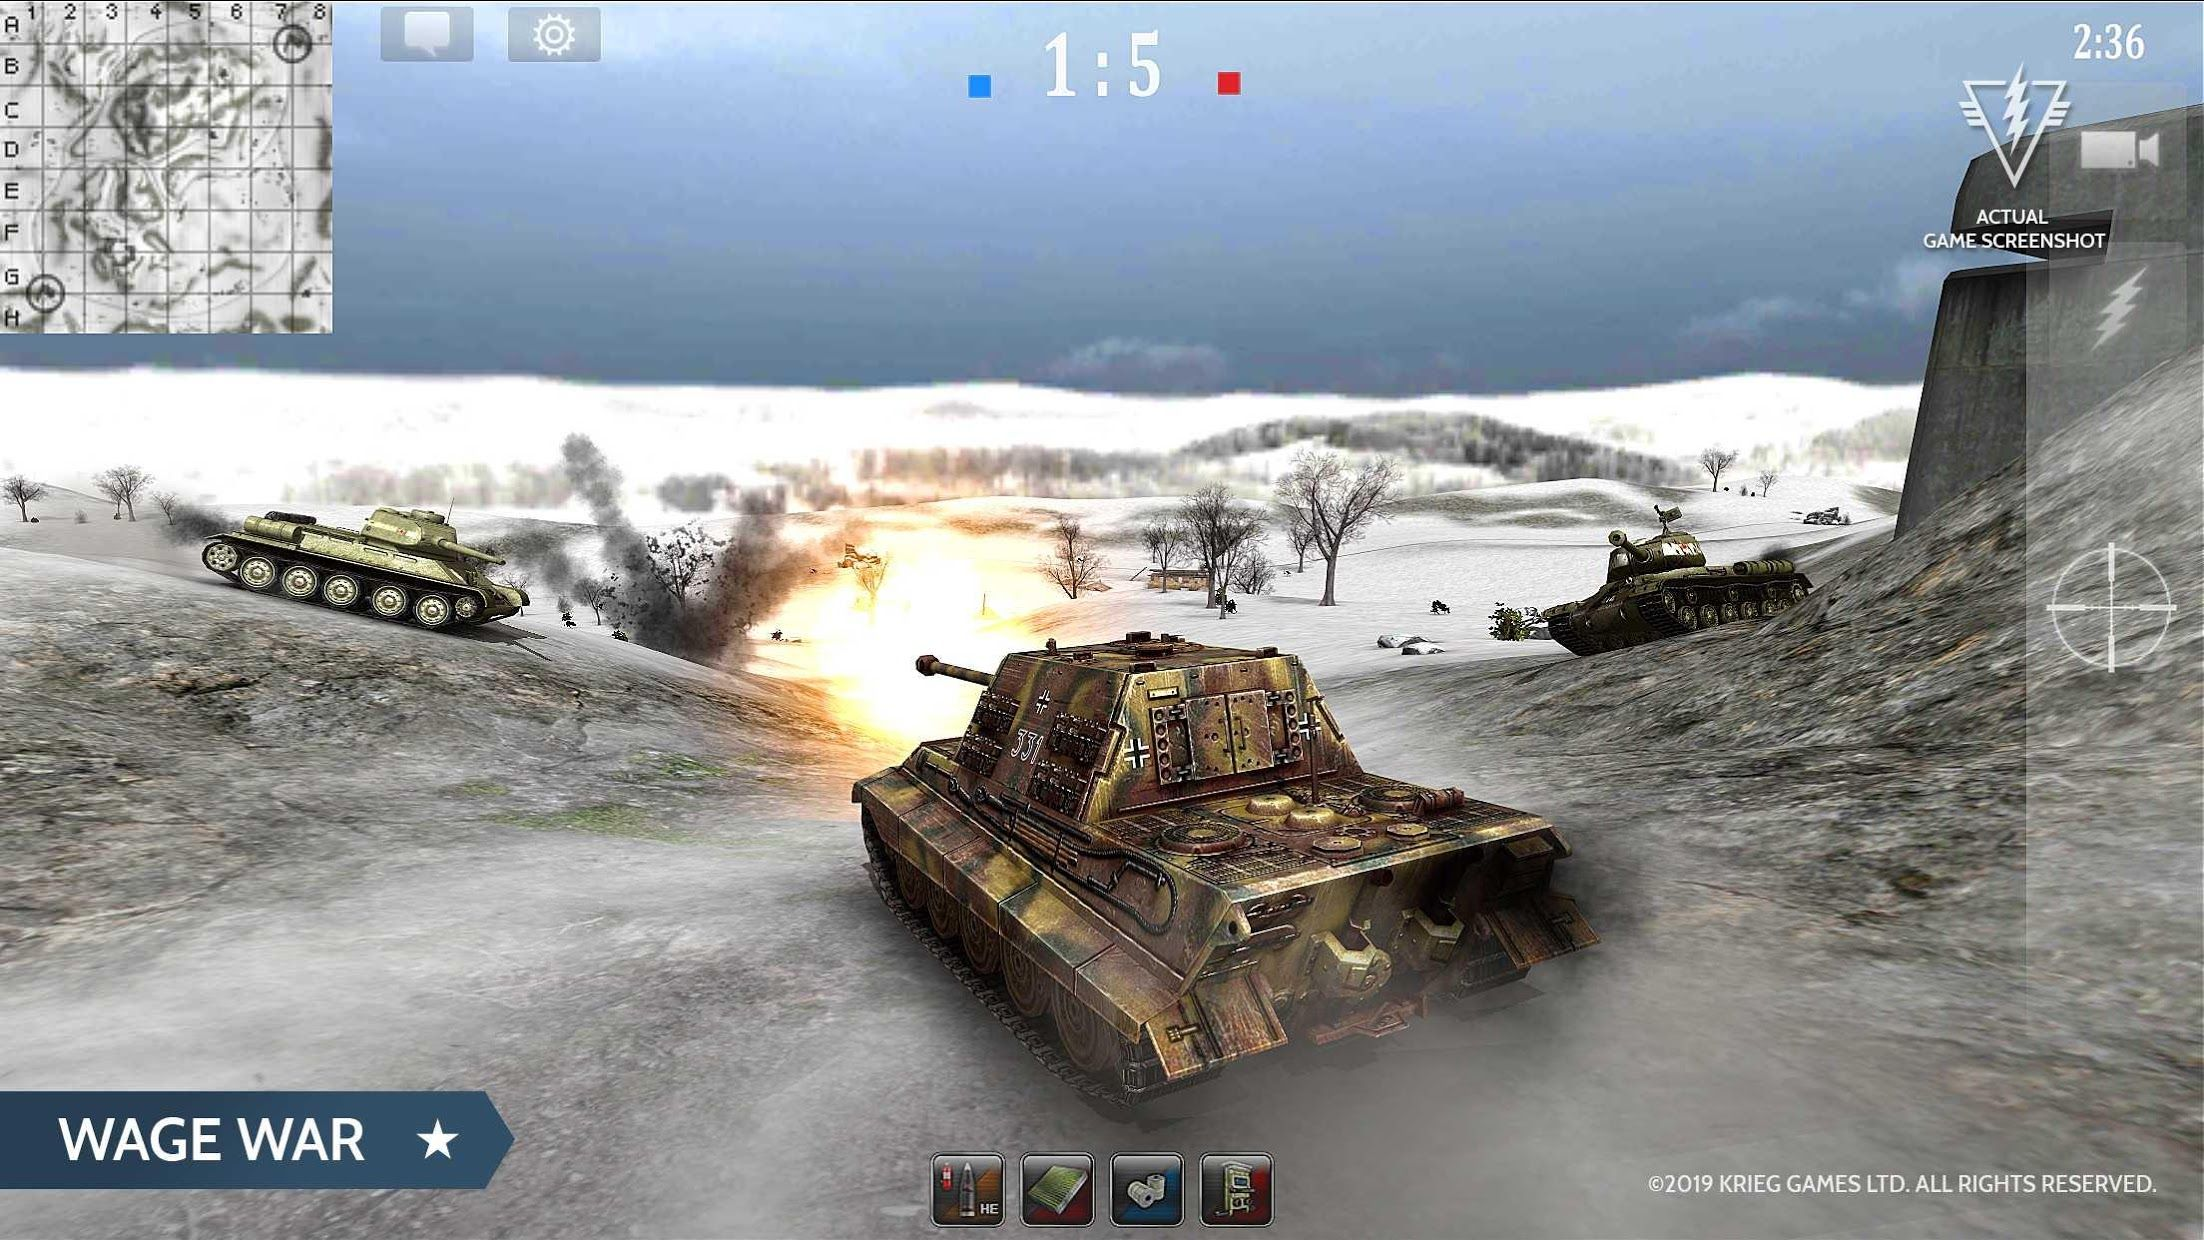 Armored Aces - Tanks in the World War 游戏截图4